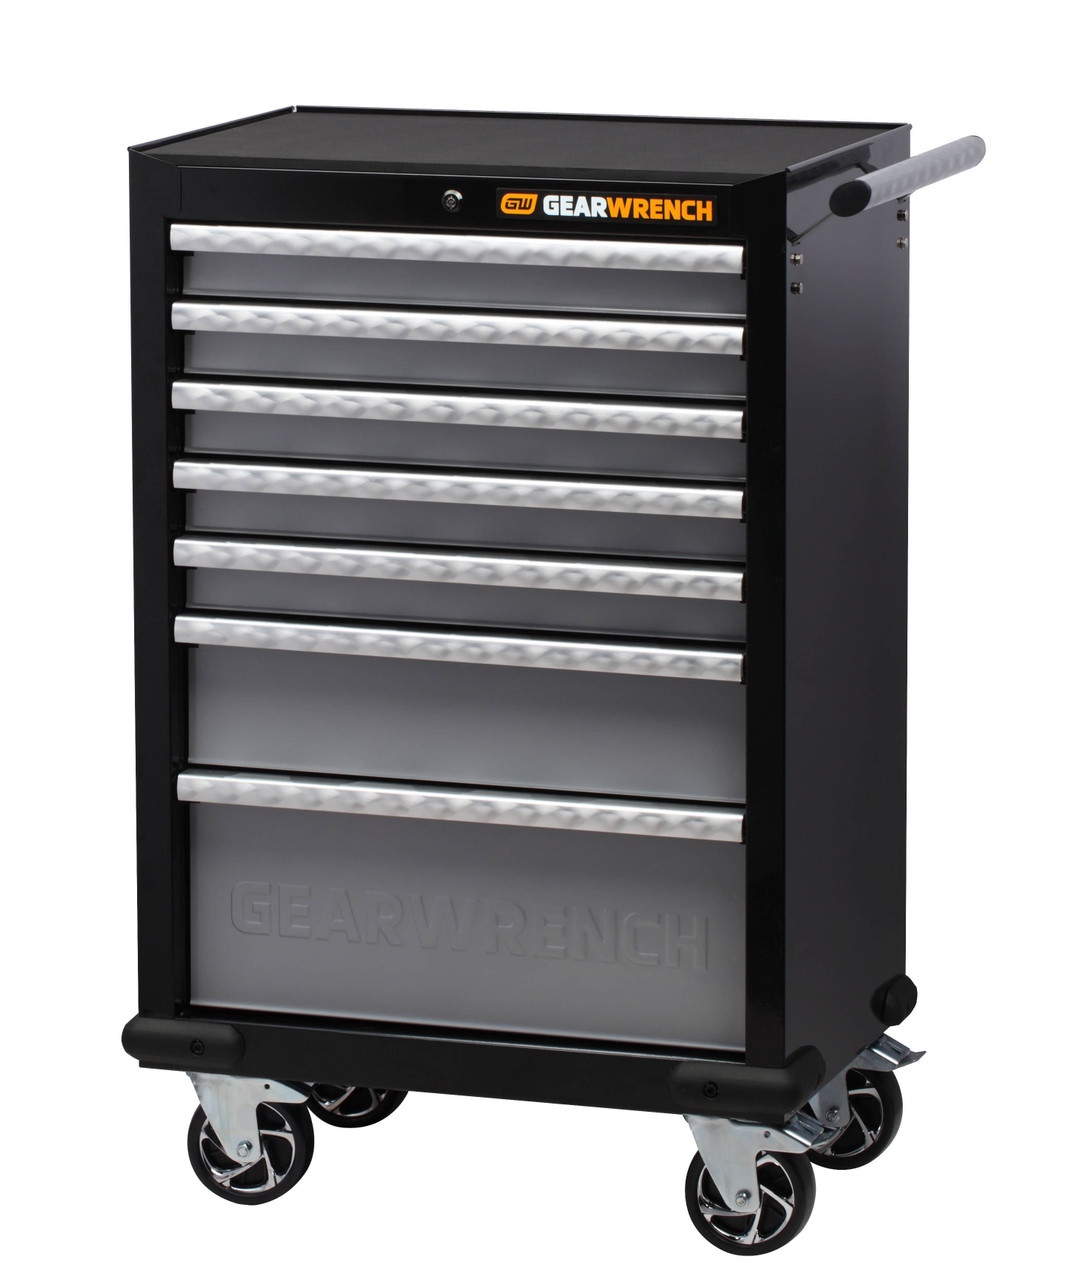 """Gearwrench 271 Pc Combination Tool Kit + 26"""" Tool Trolley with Side Cabinet"""